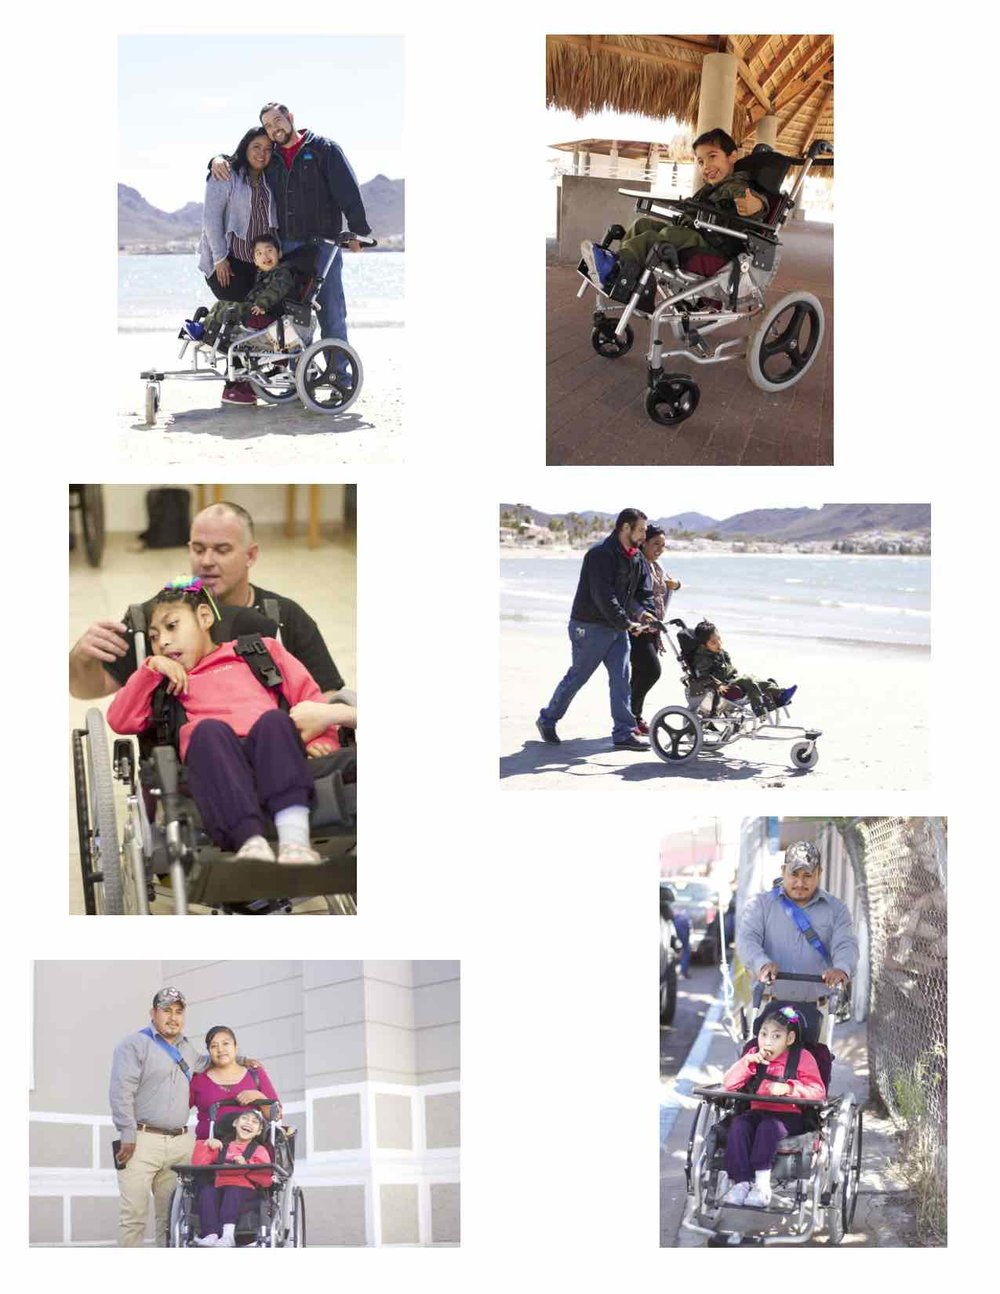 On Feb. 16, the wheelchairs were tested in Guaymas, Mexico by pilot users.